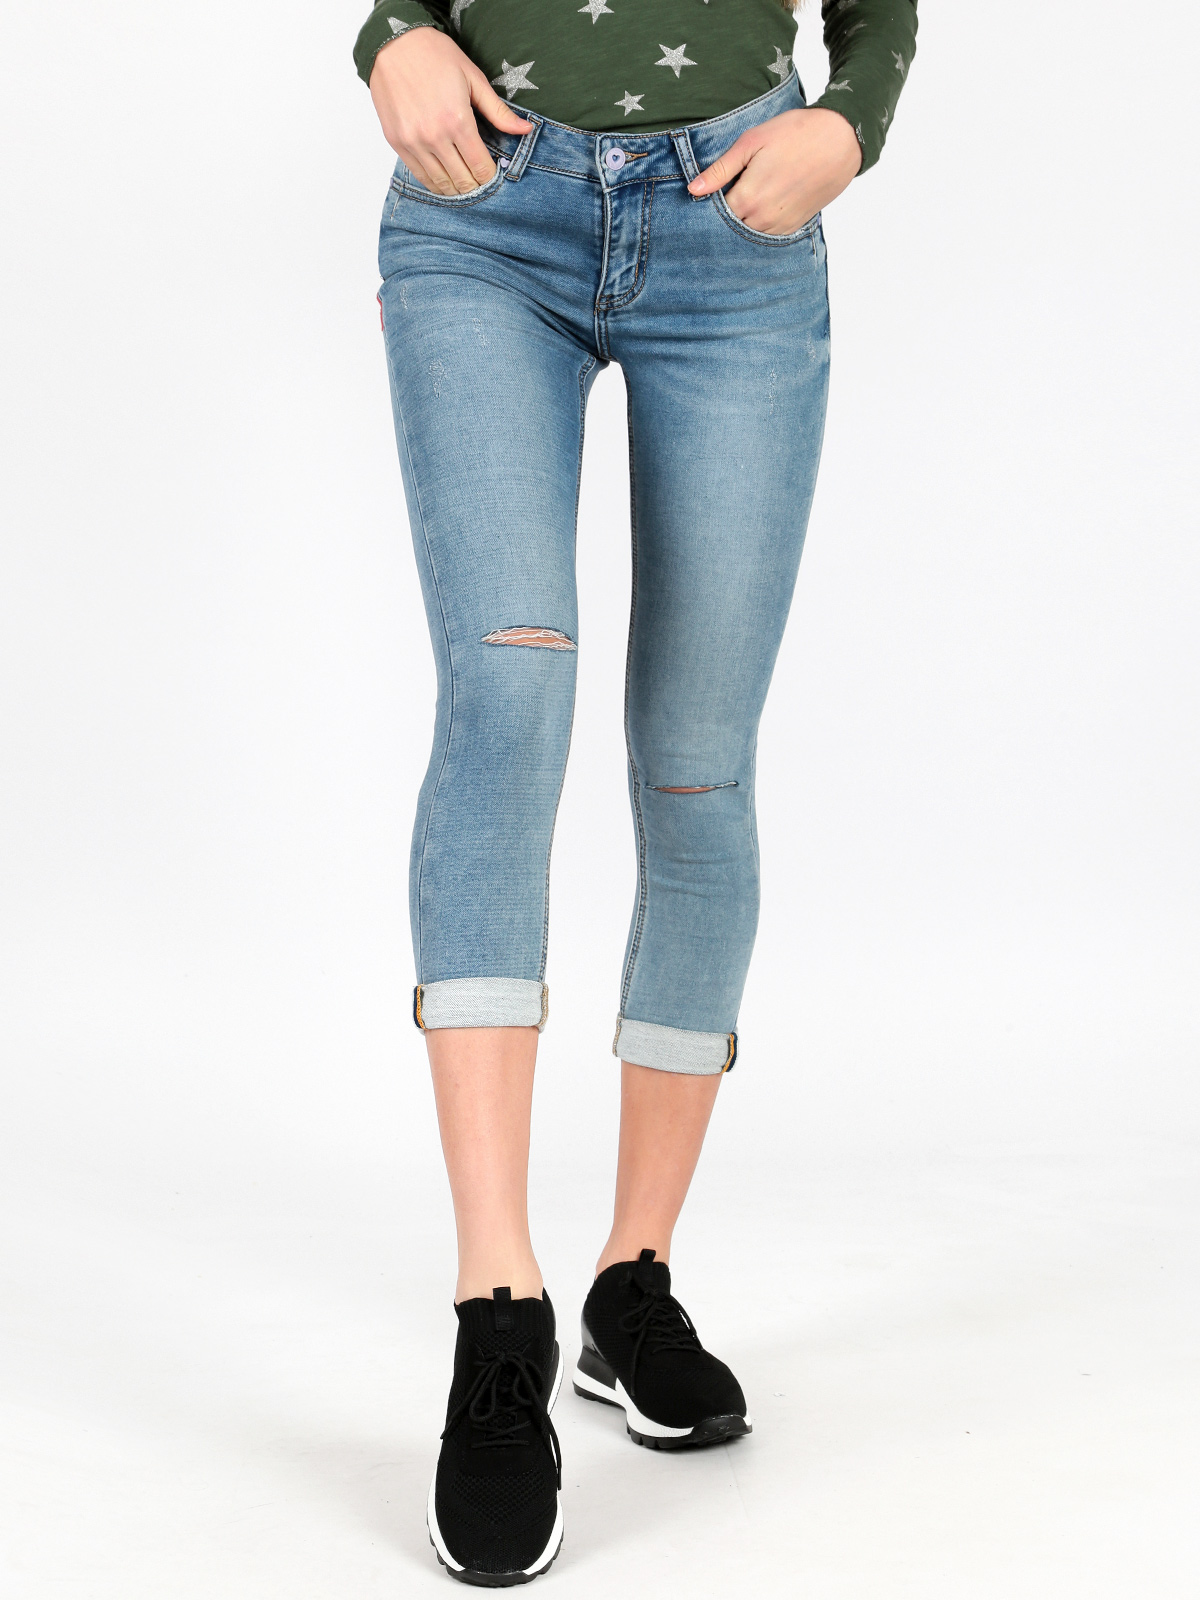 Jeans Slim Fit With Tear